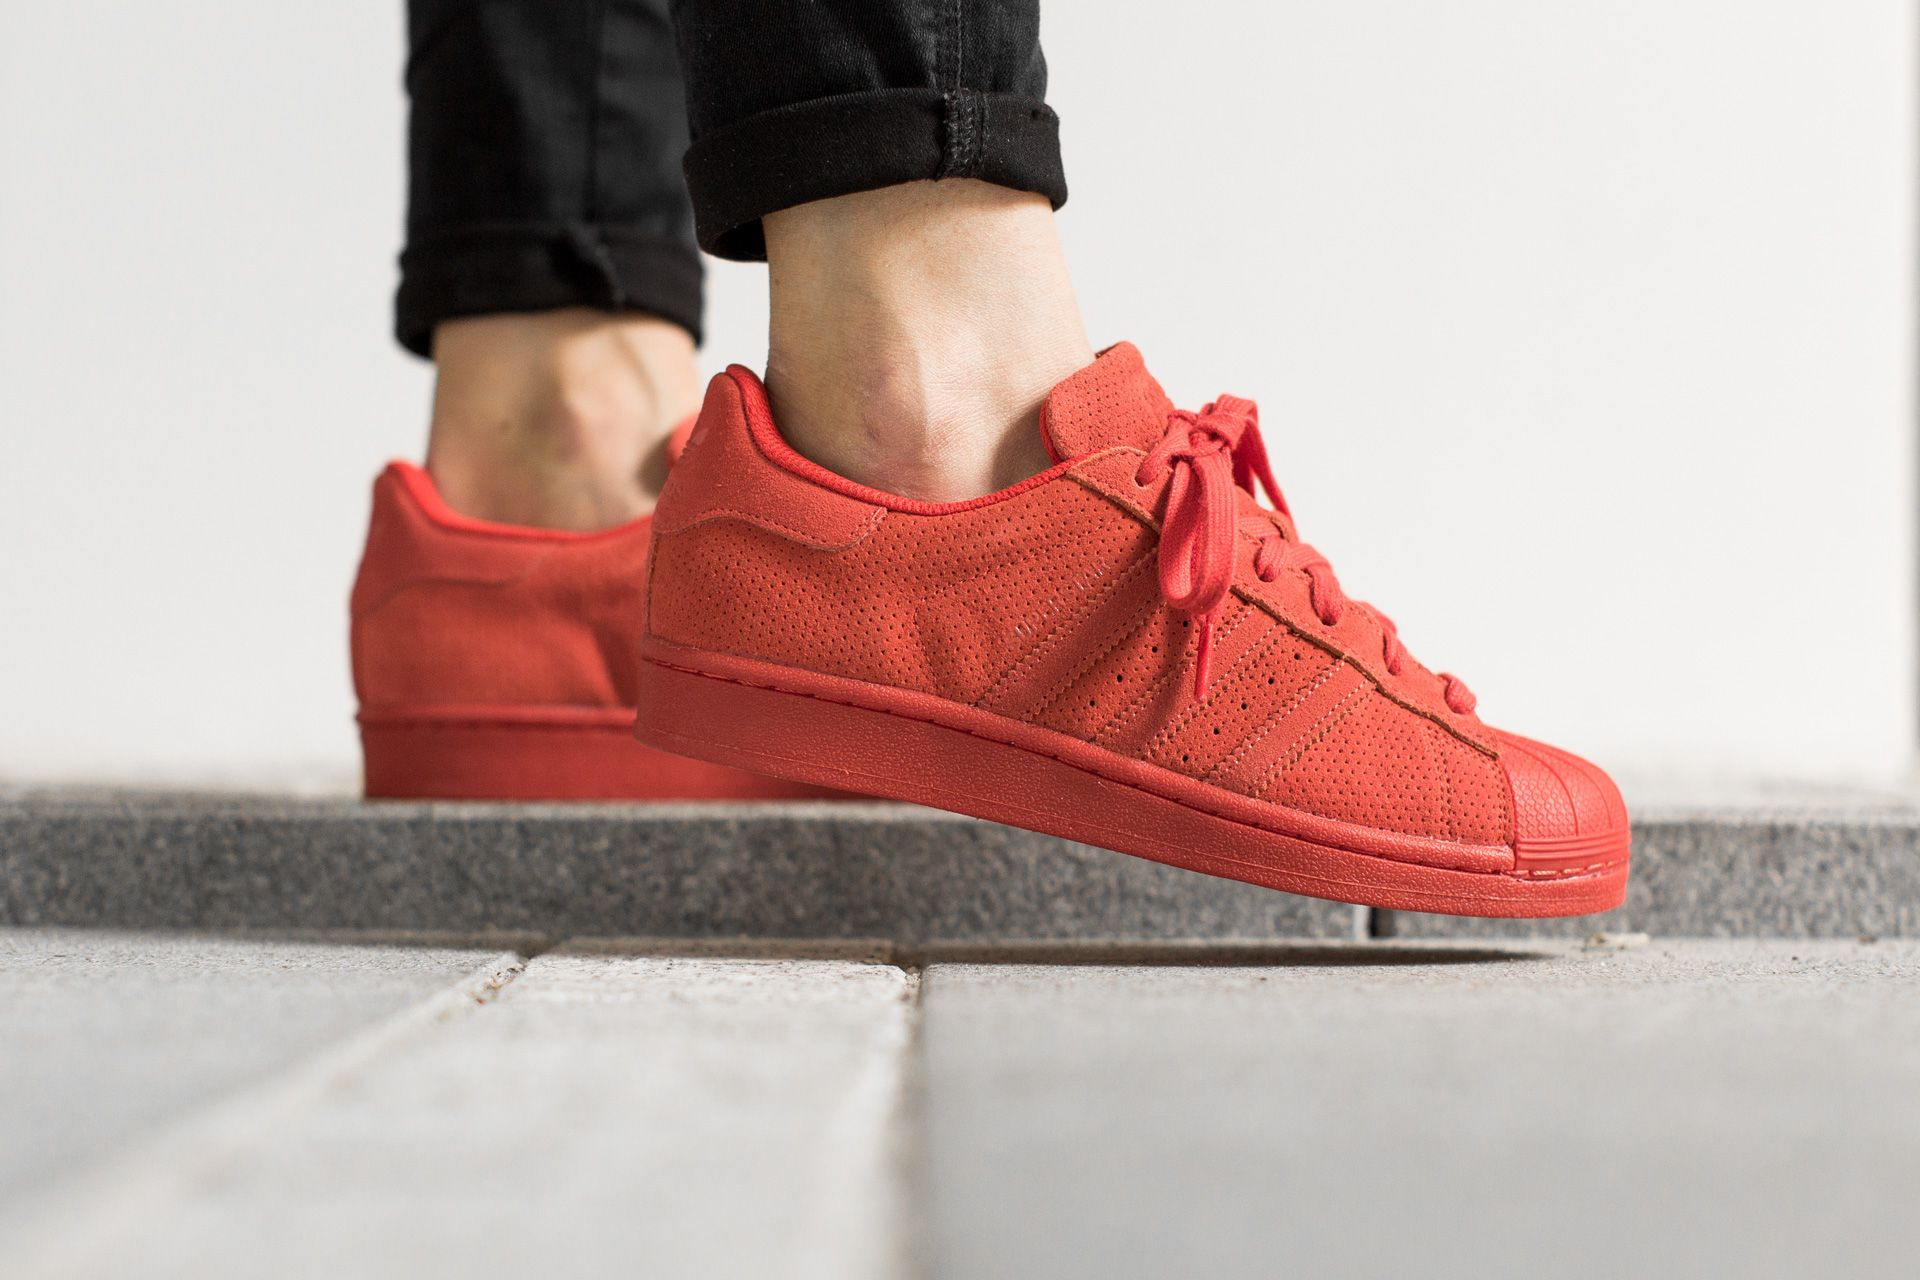 online store f4ea1 e17ad ADIDAS ORIGINALS SUPERSTAR RT RED RED RED available at  www.tint-footwear.com adidas-originals-superstar-rt-s79475 adidas superstar  monochrome all red red ...